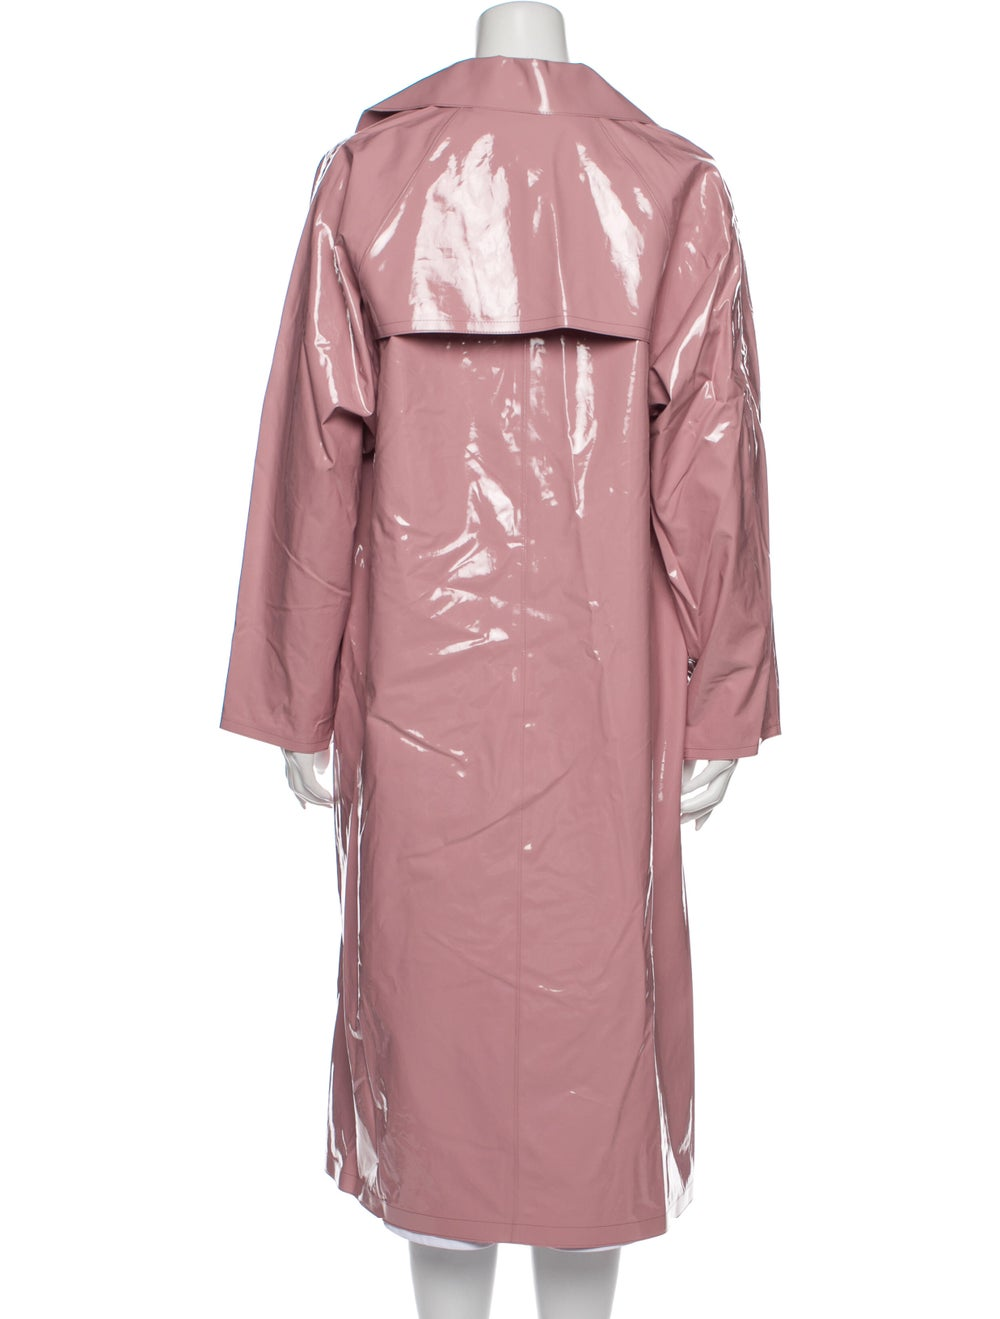 Kassl Trench Coat Pink - image 3